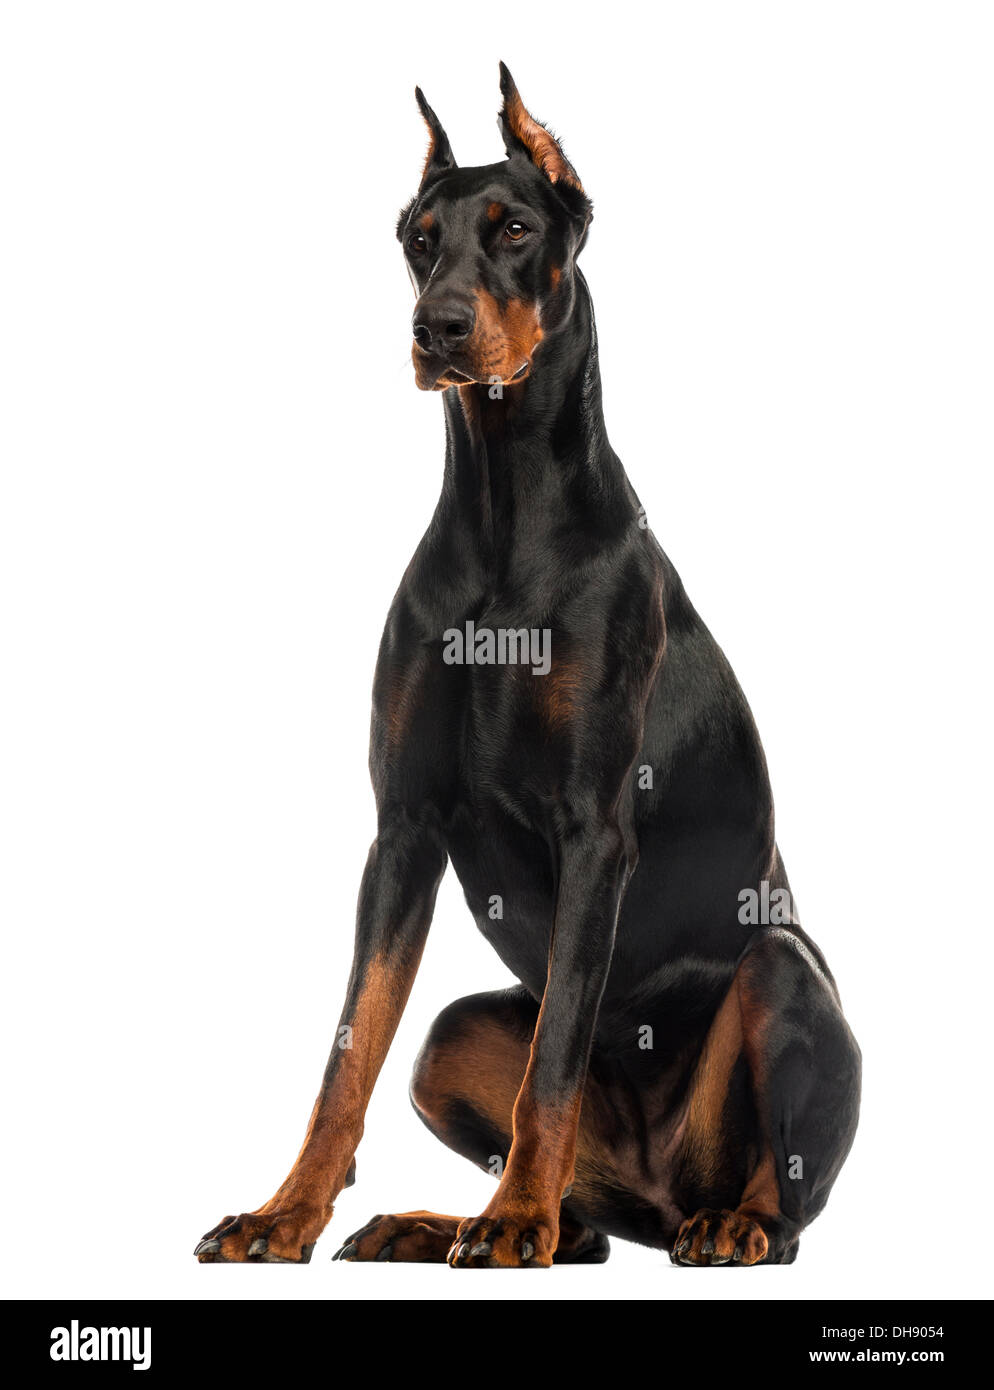 Doberman Pinscher sitting against white background - Stock Image